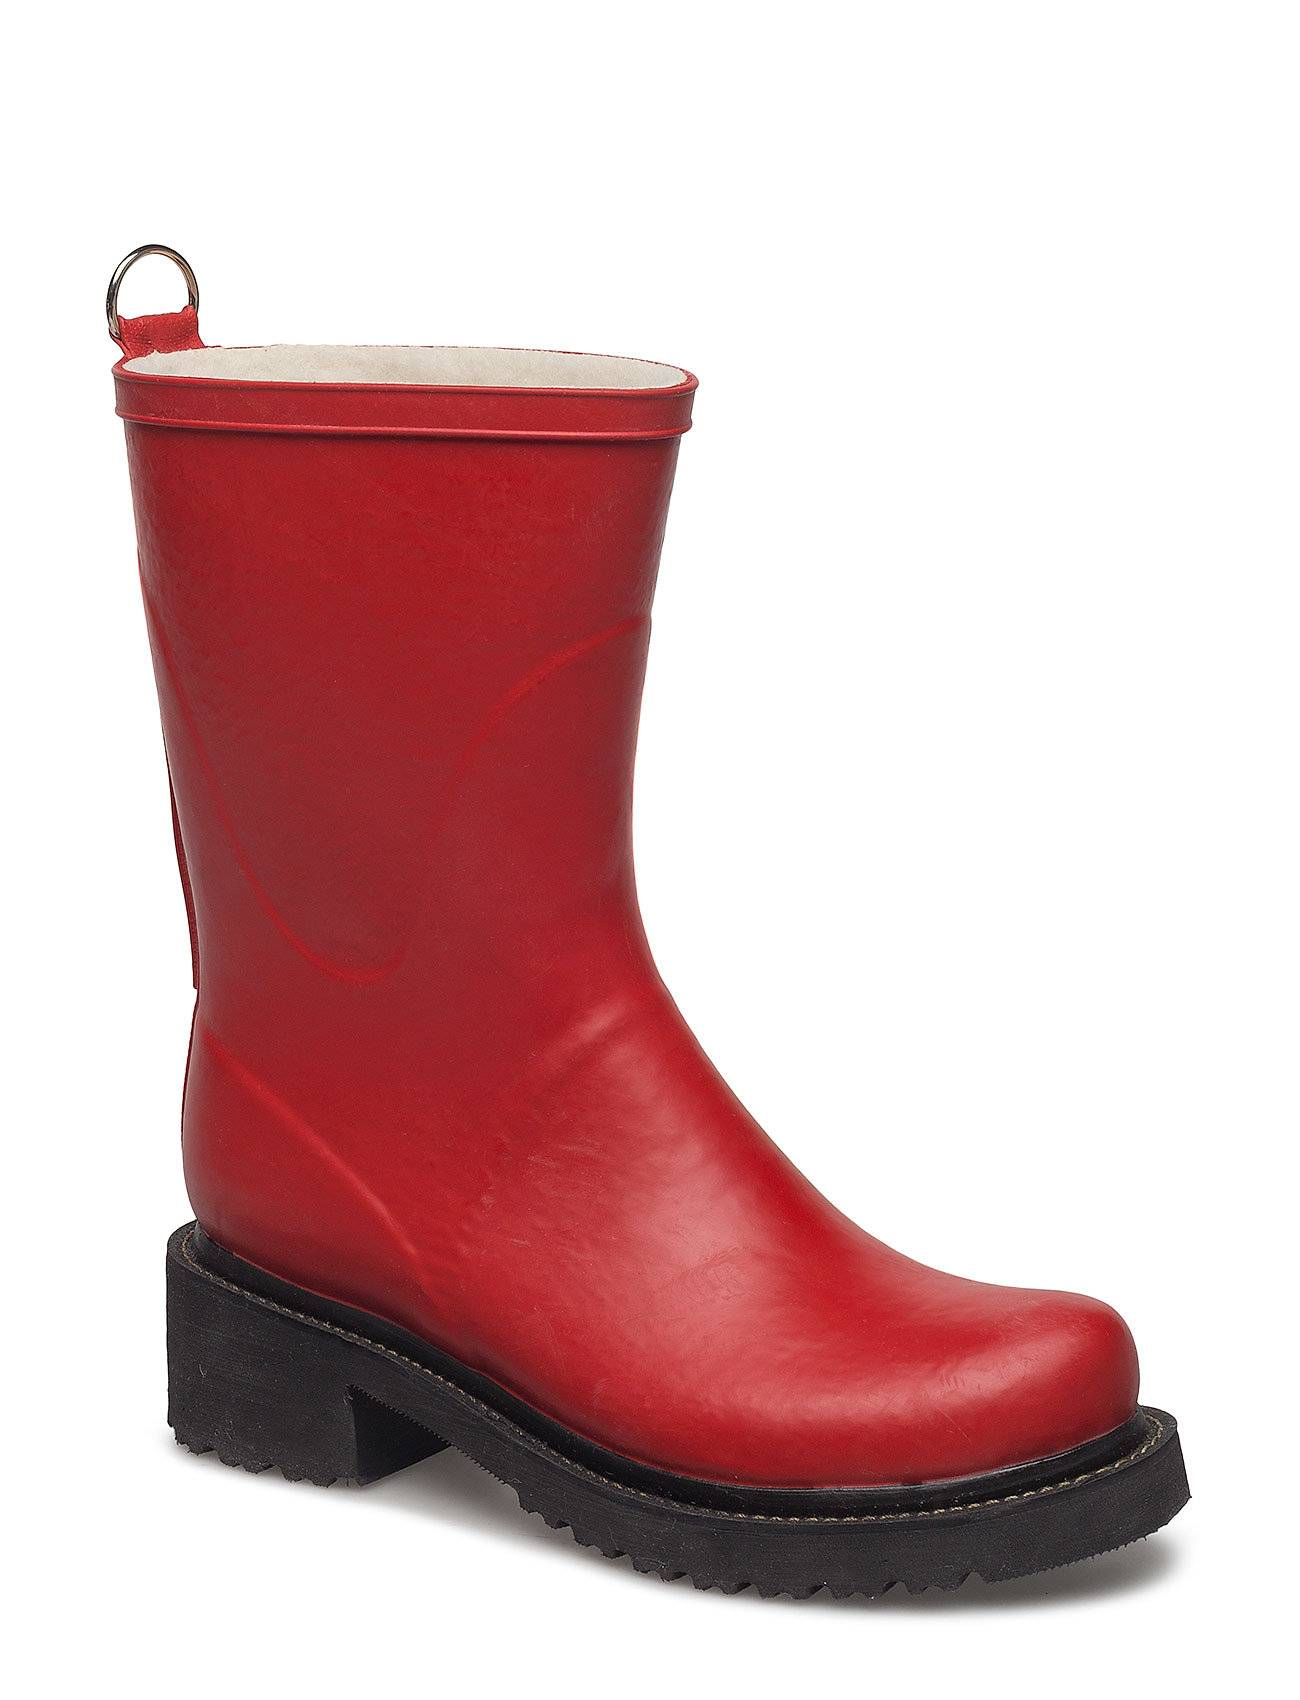 Ilse Jacobsen 3/4 Rubber Boot